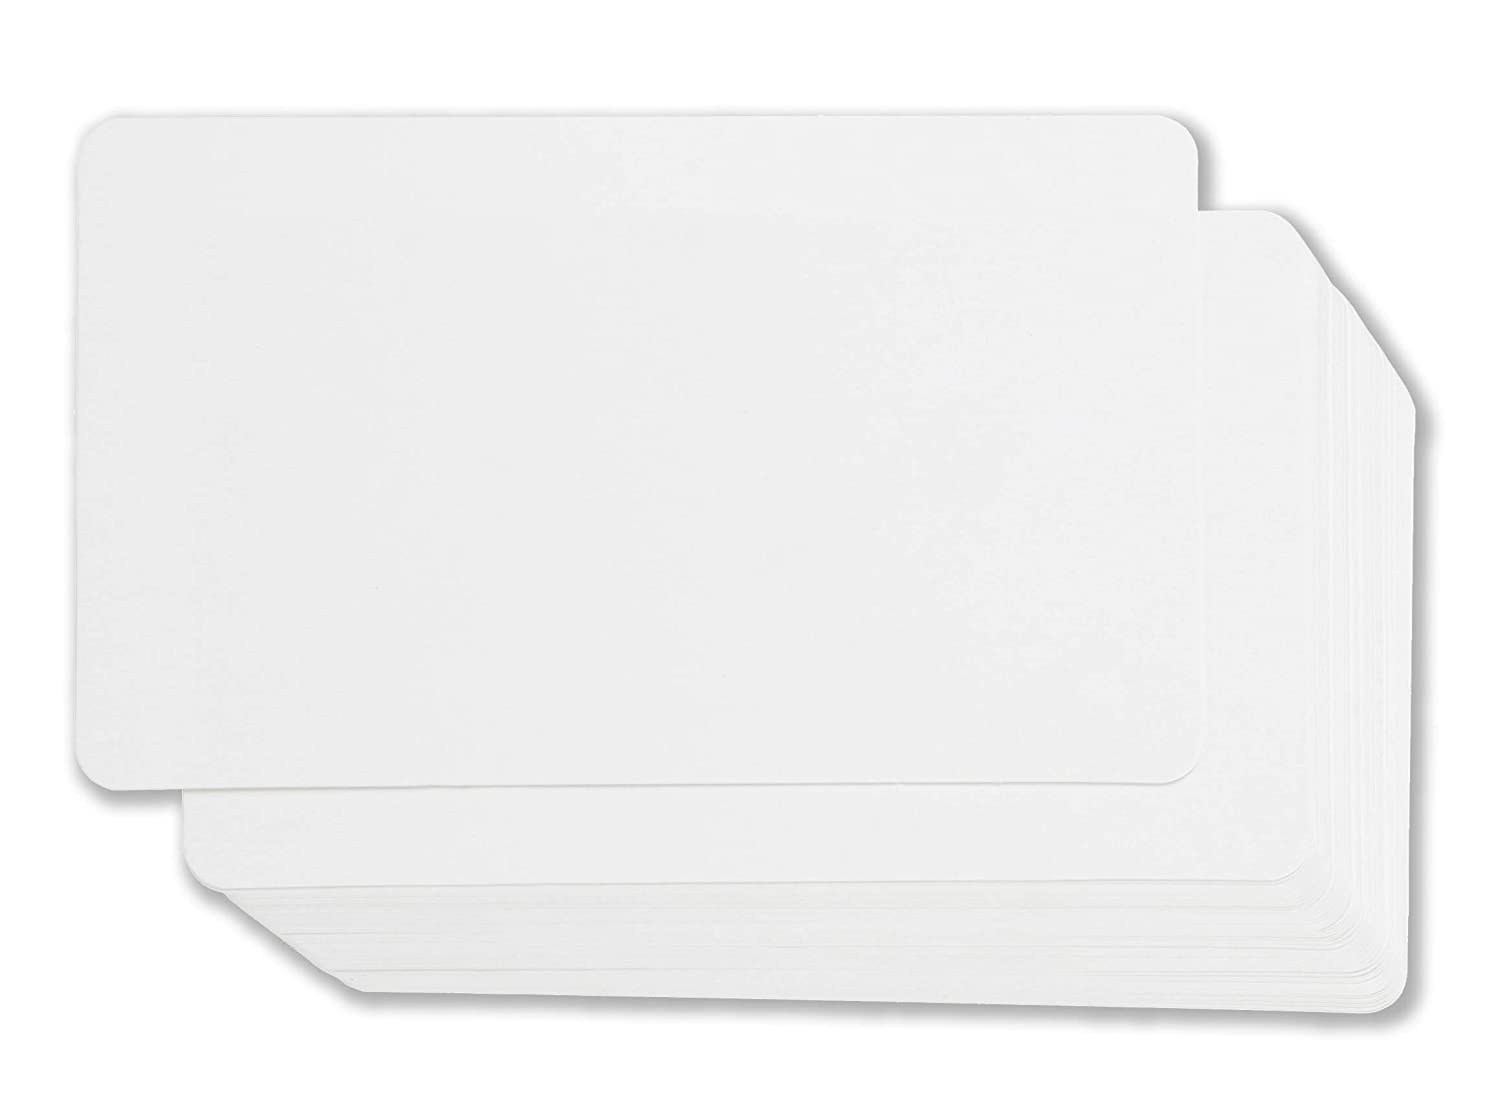 Blank Index Cards - 100-Count Rounded Blank Flash Cards, for Business Cards Message Cards, DIY Gift Cards, White, 3 x 5 inches Juvale